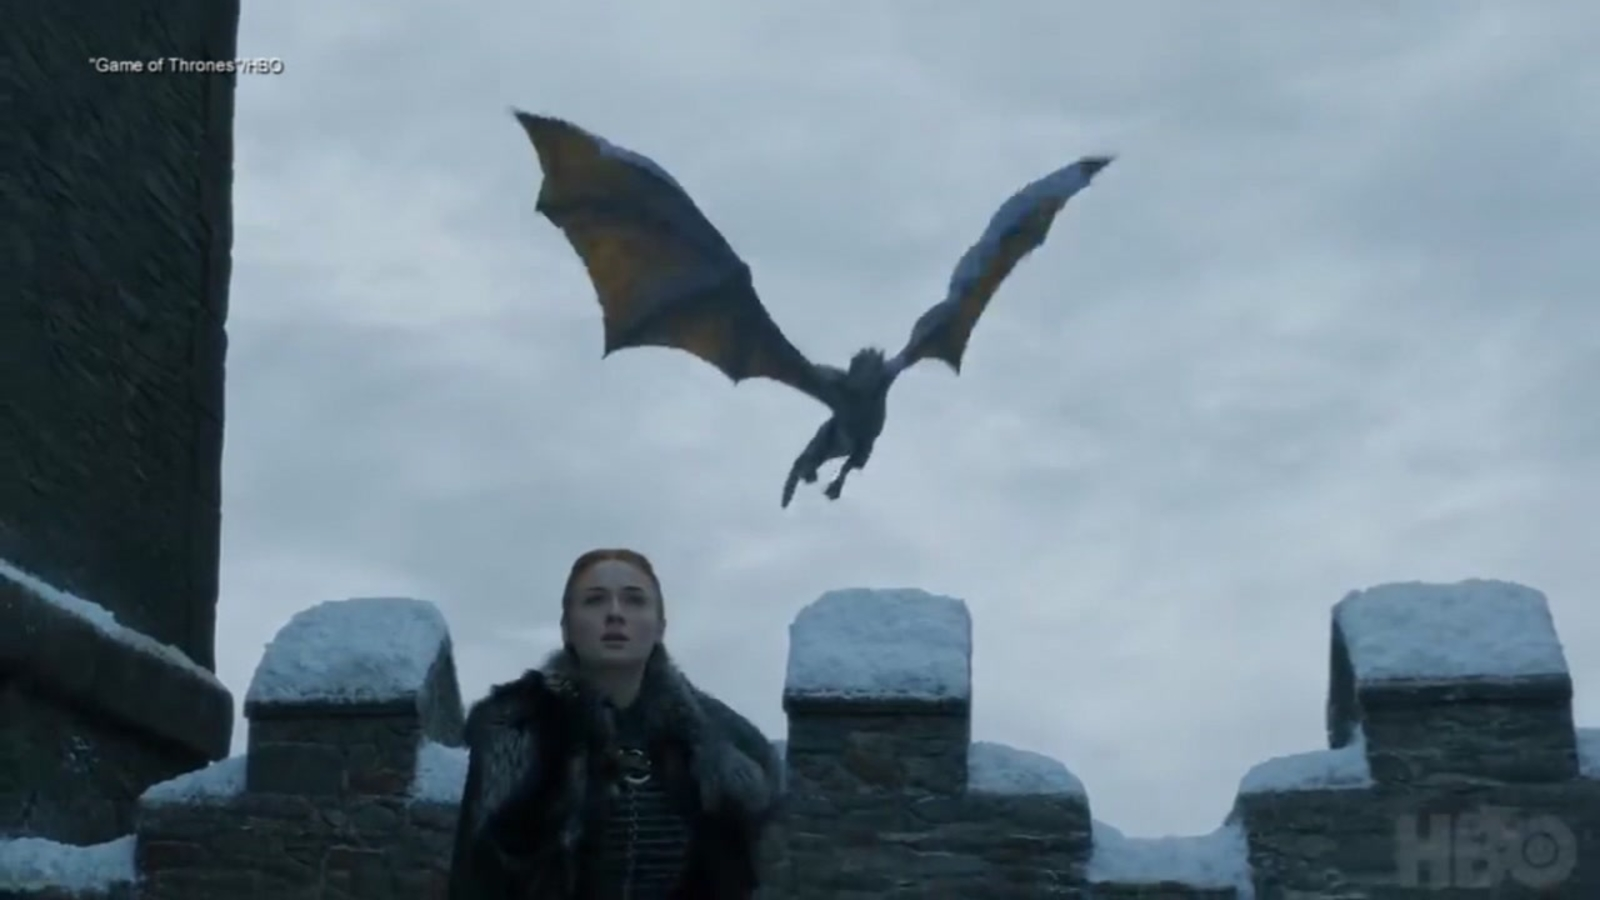 Emmy nominations: 'Game of Thrones' leads way with record-breaking 32 nods